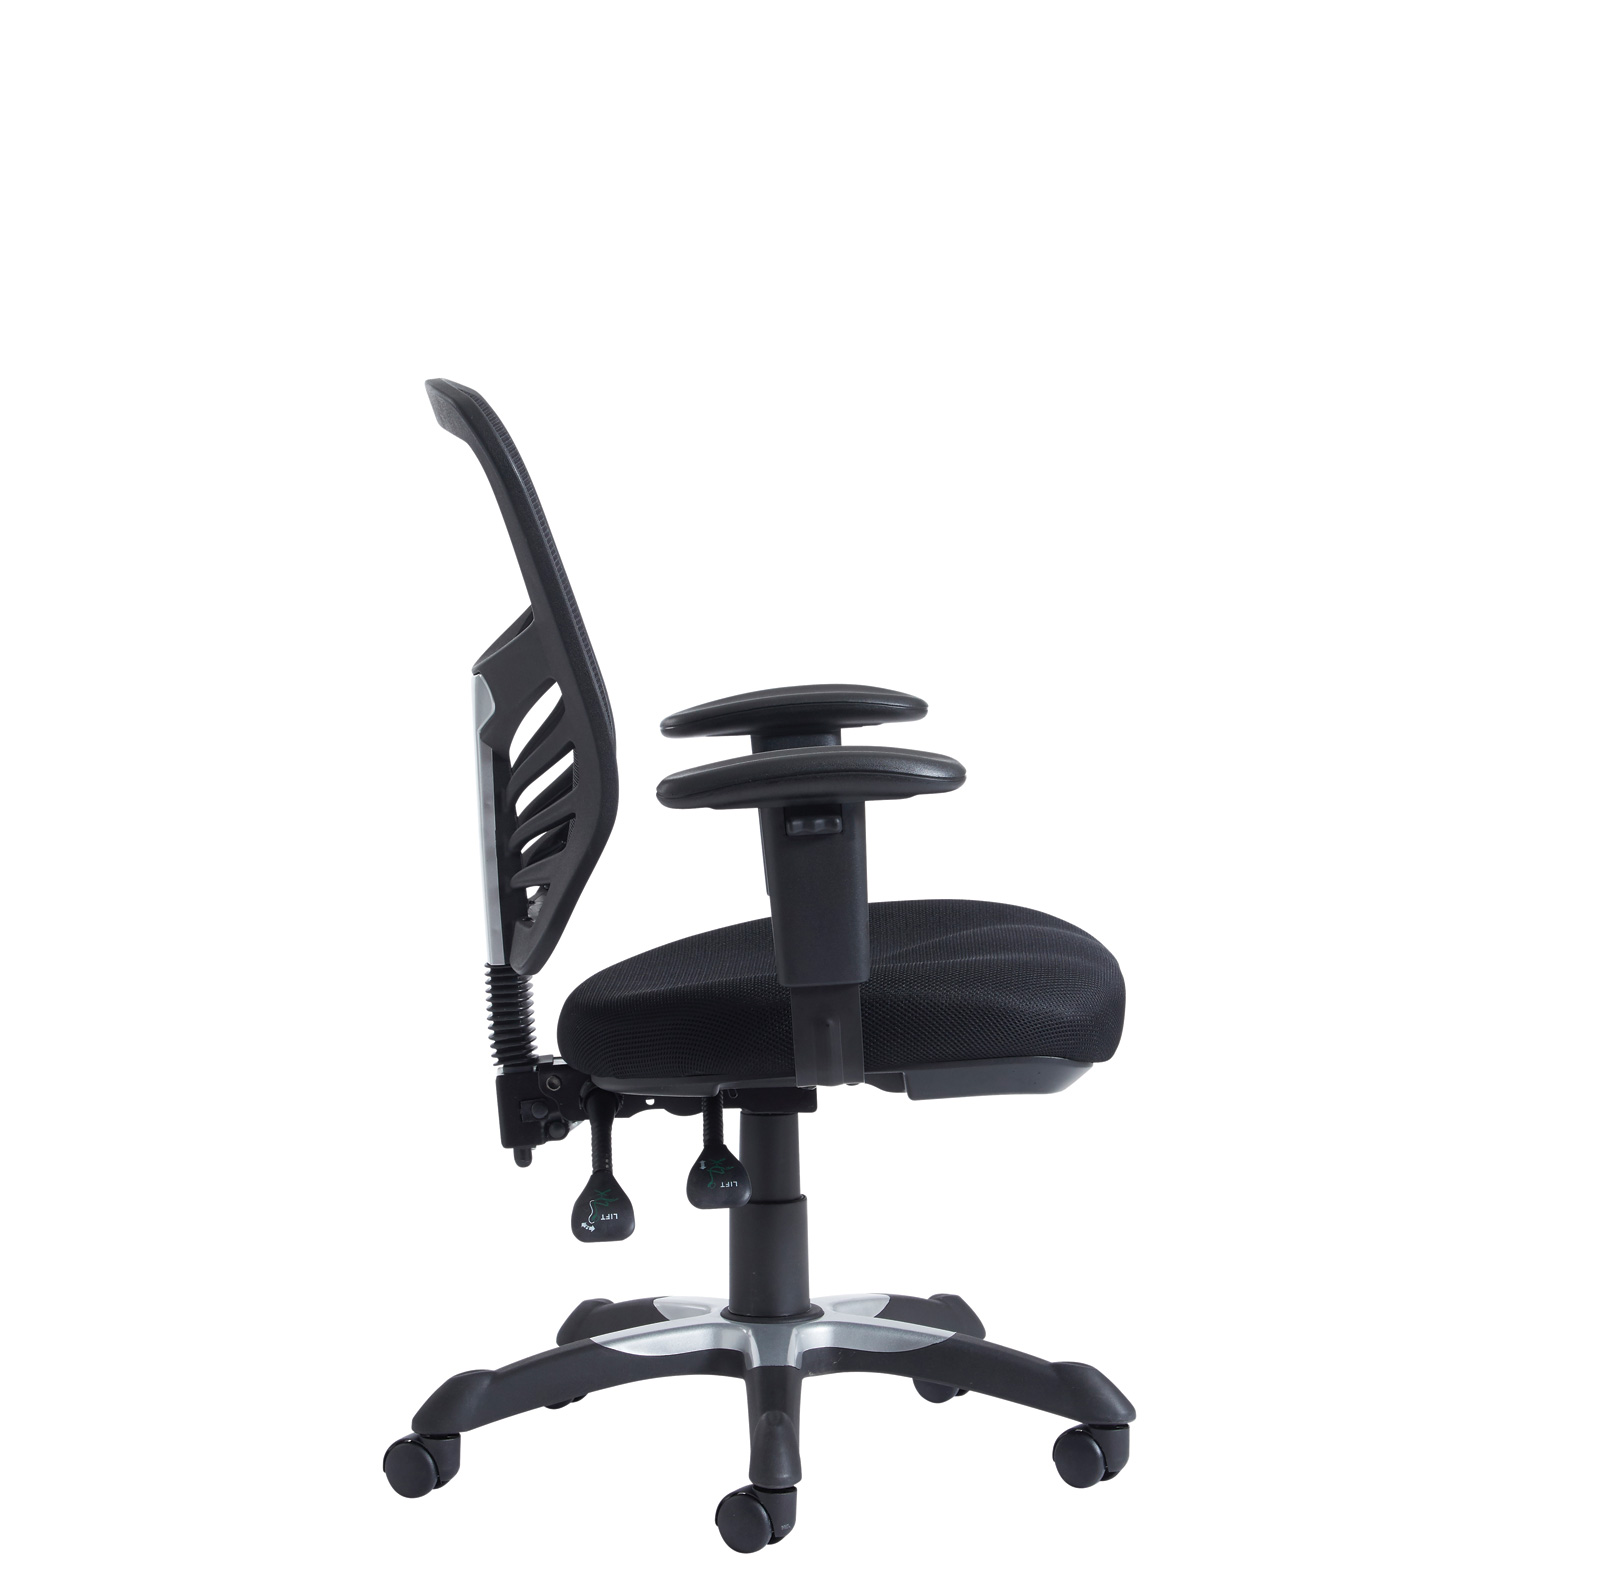 How To Adjust Office Chair Vantage 2 Lever Chair Adjust Arms Black